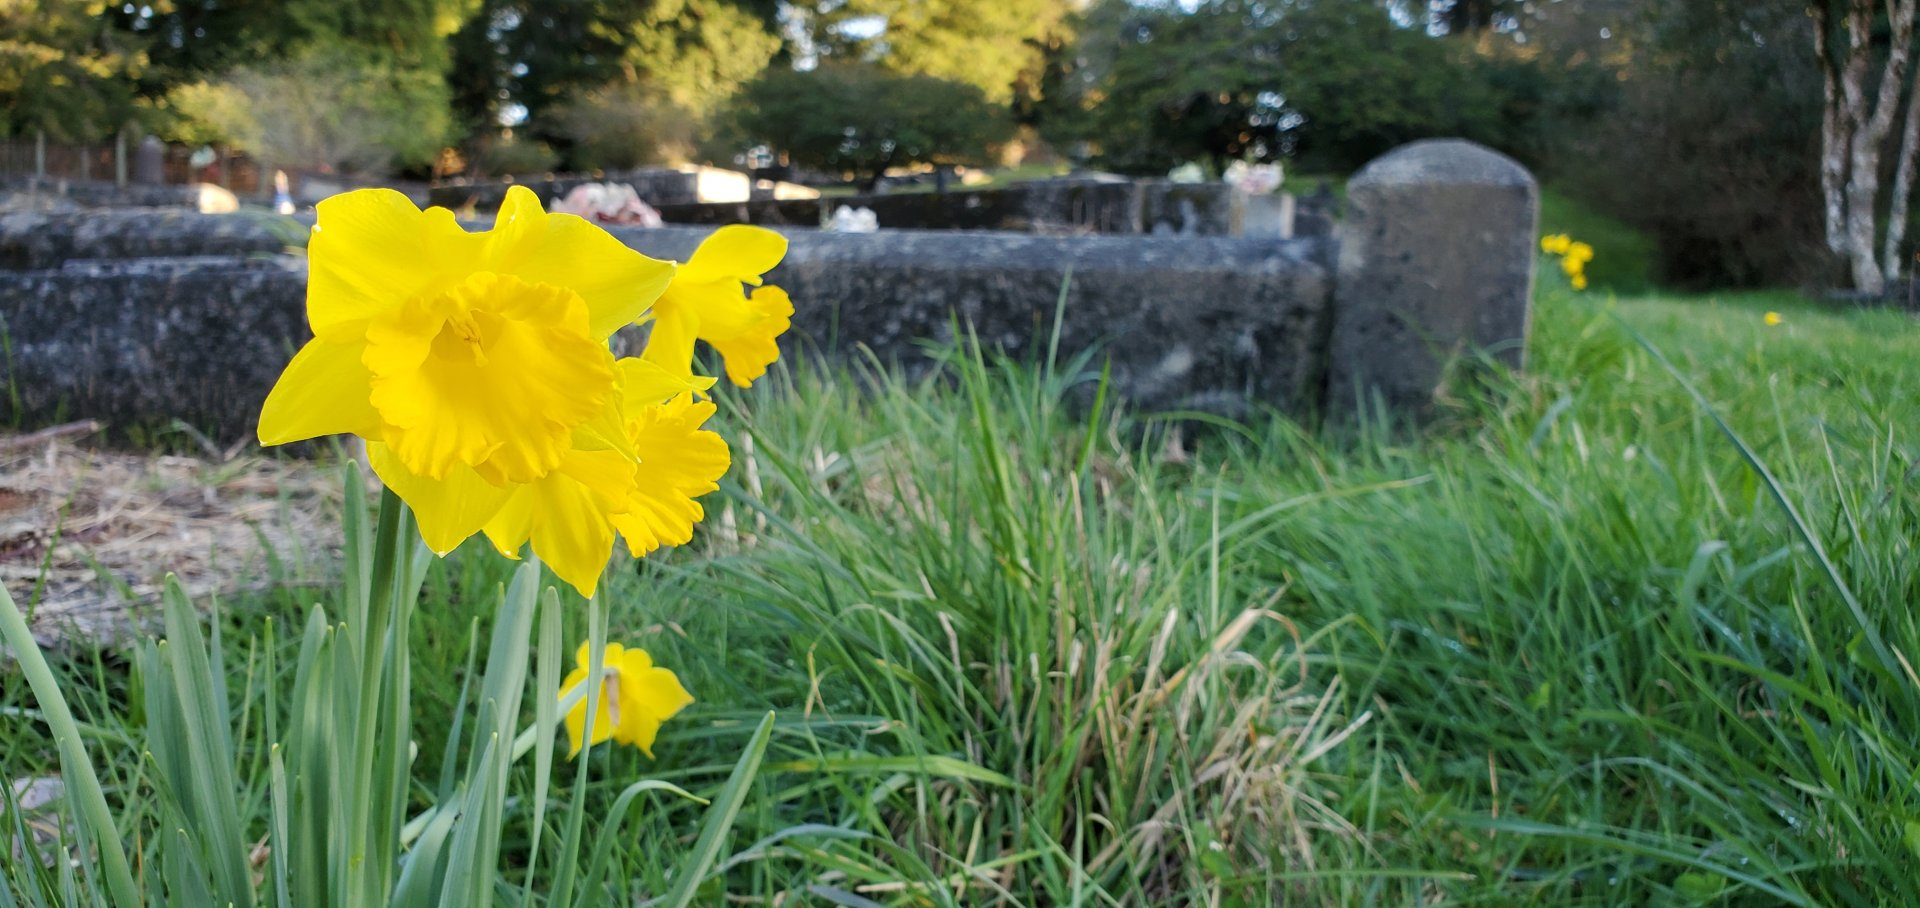 Daffodils in bloom at the Blue Lake Cementery on March 12. | Photos by Jen Kelly